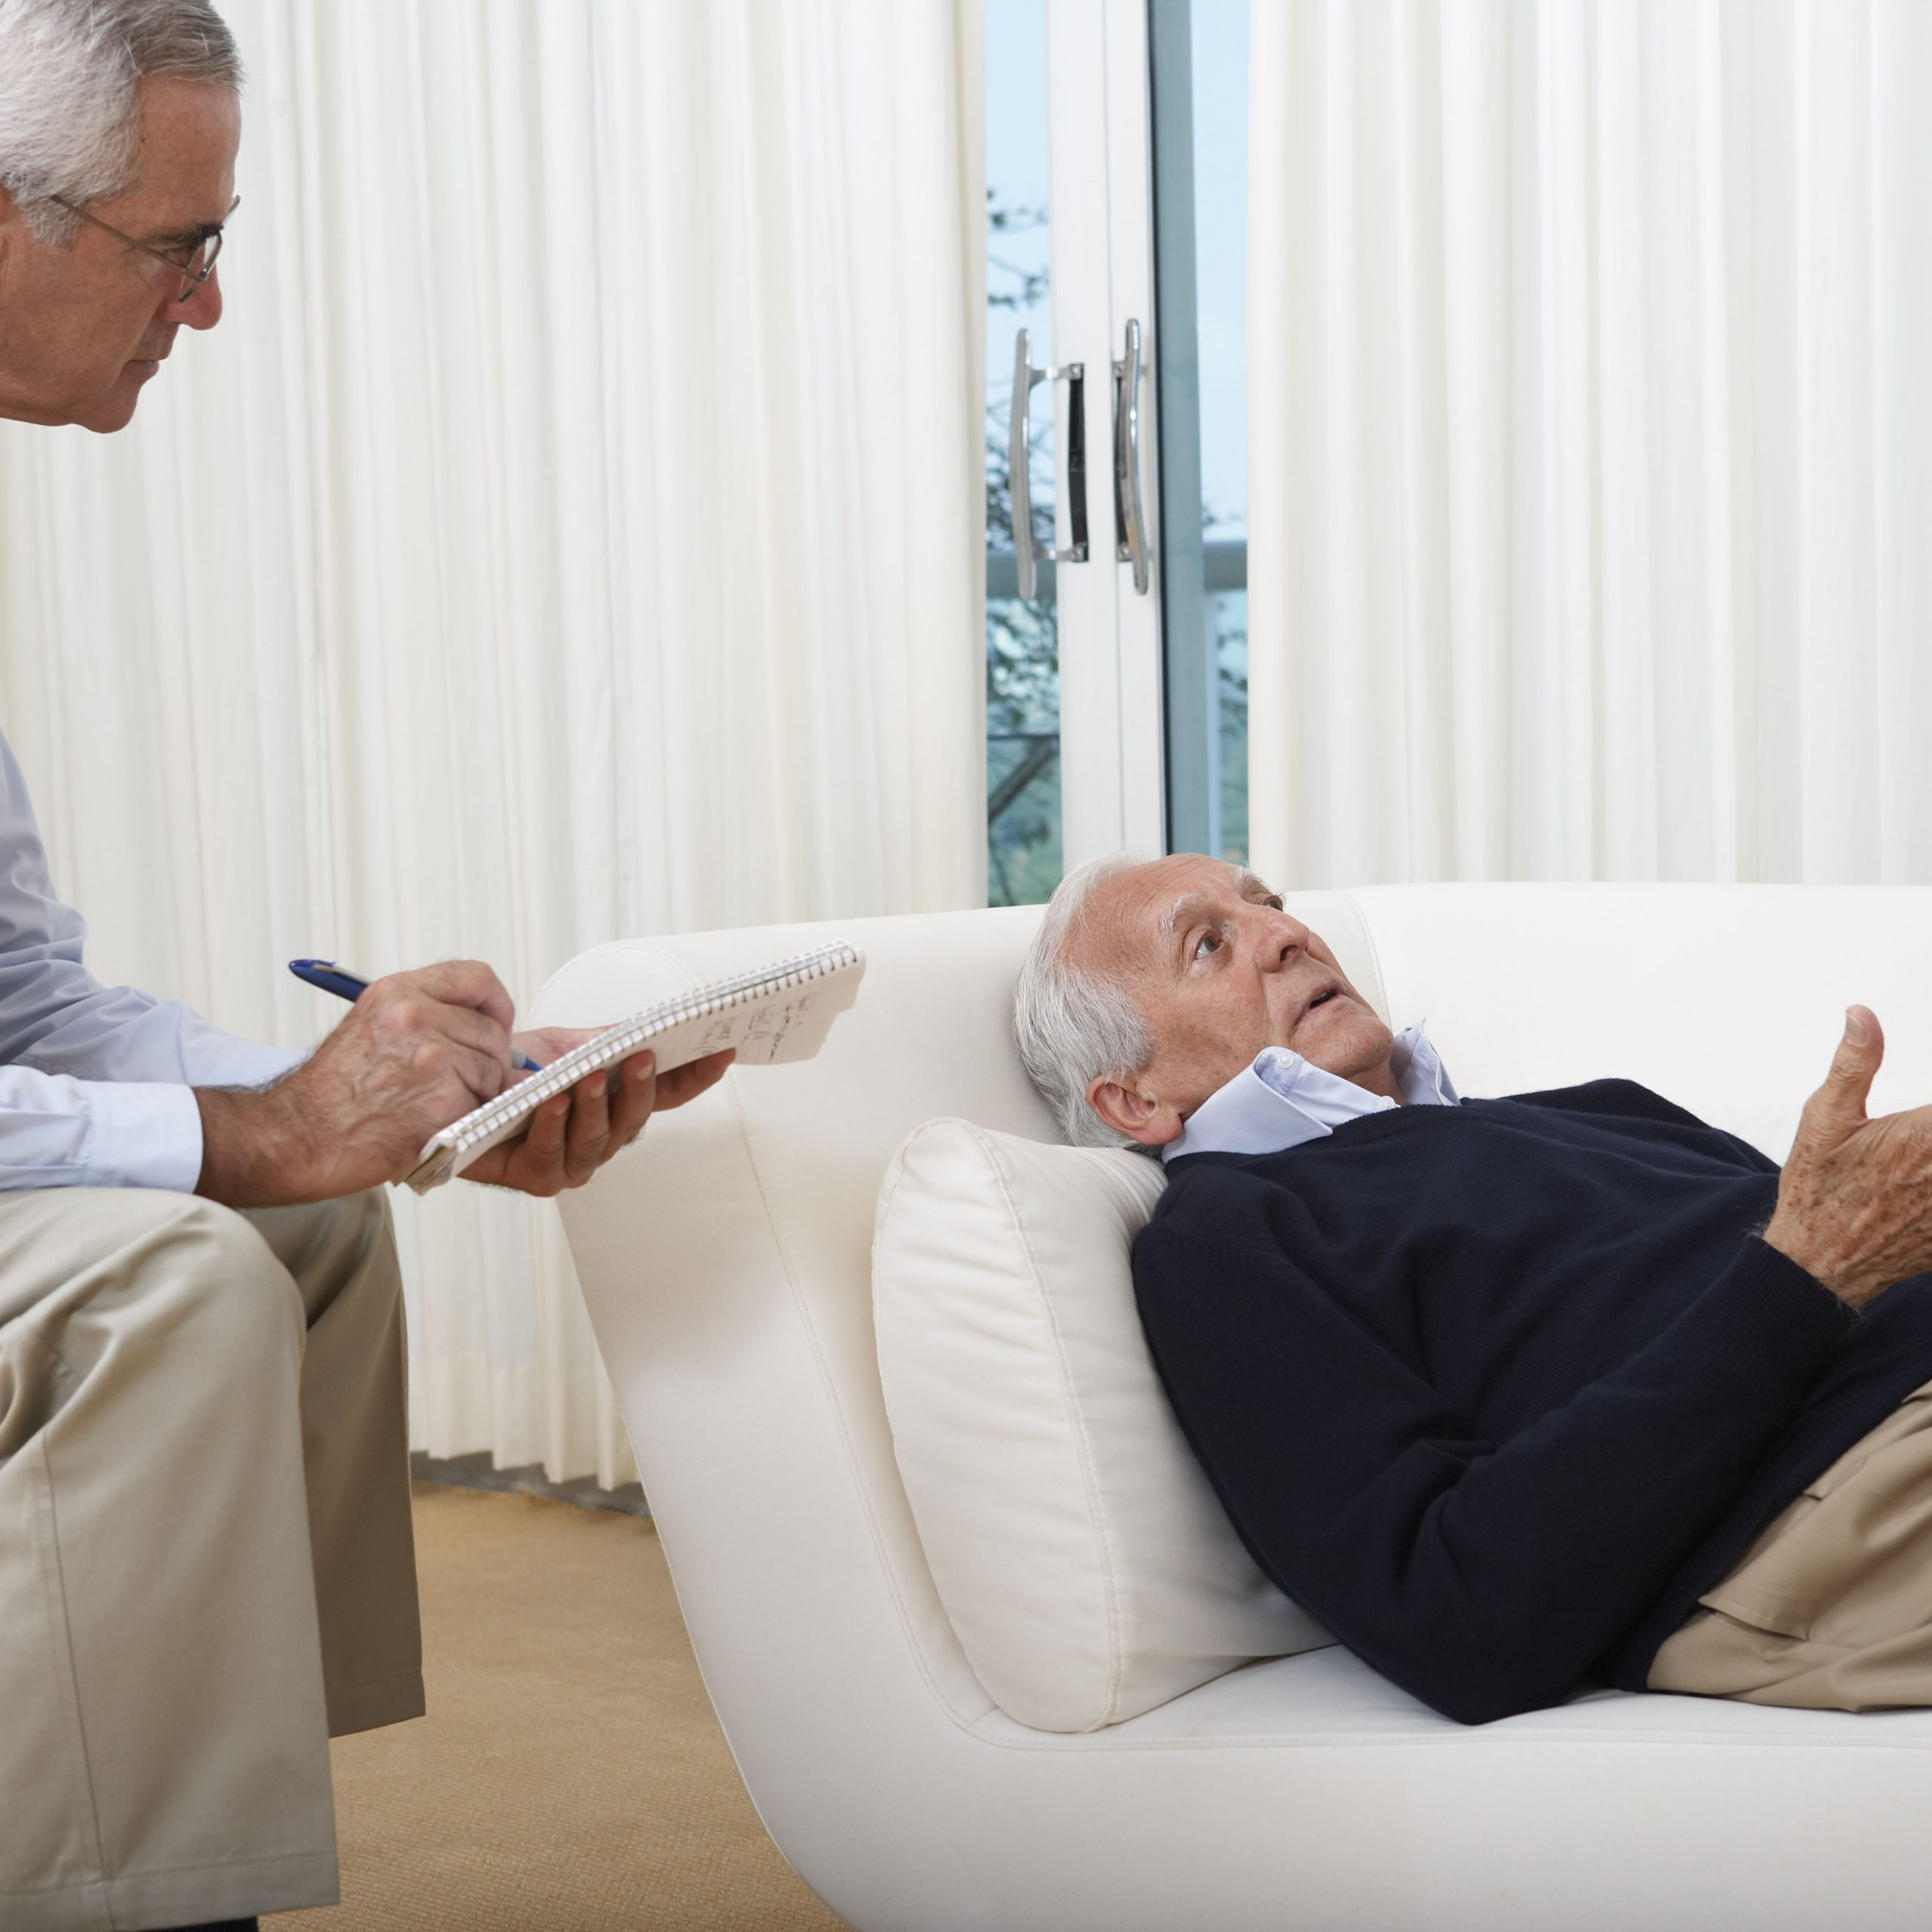 A Day in the Life of a Psychiatrist